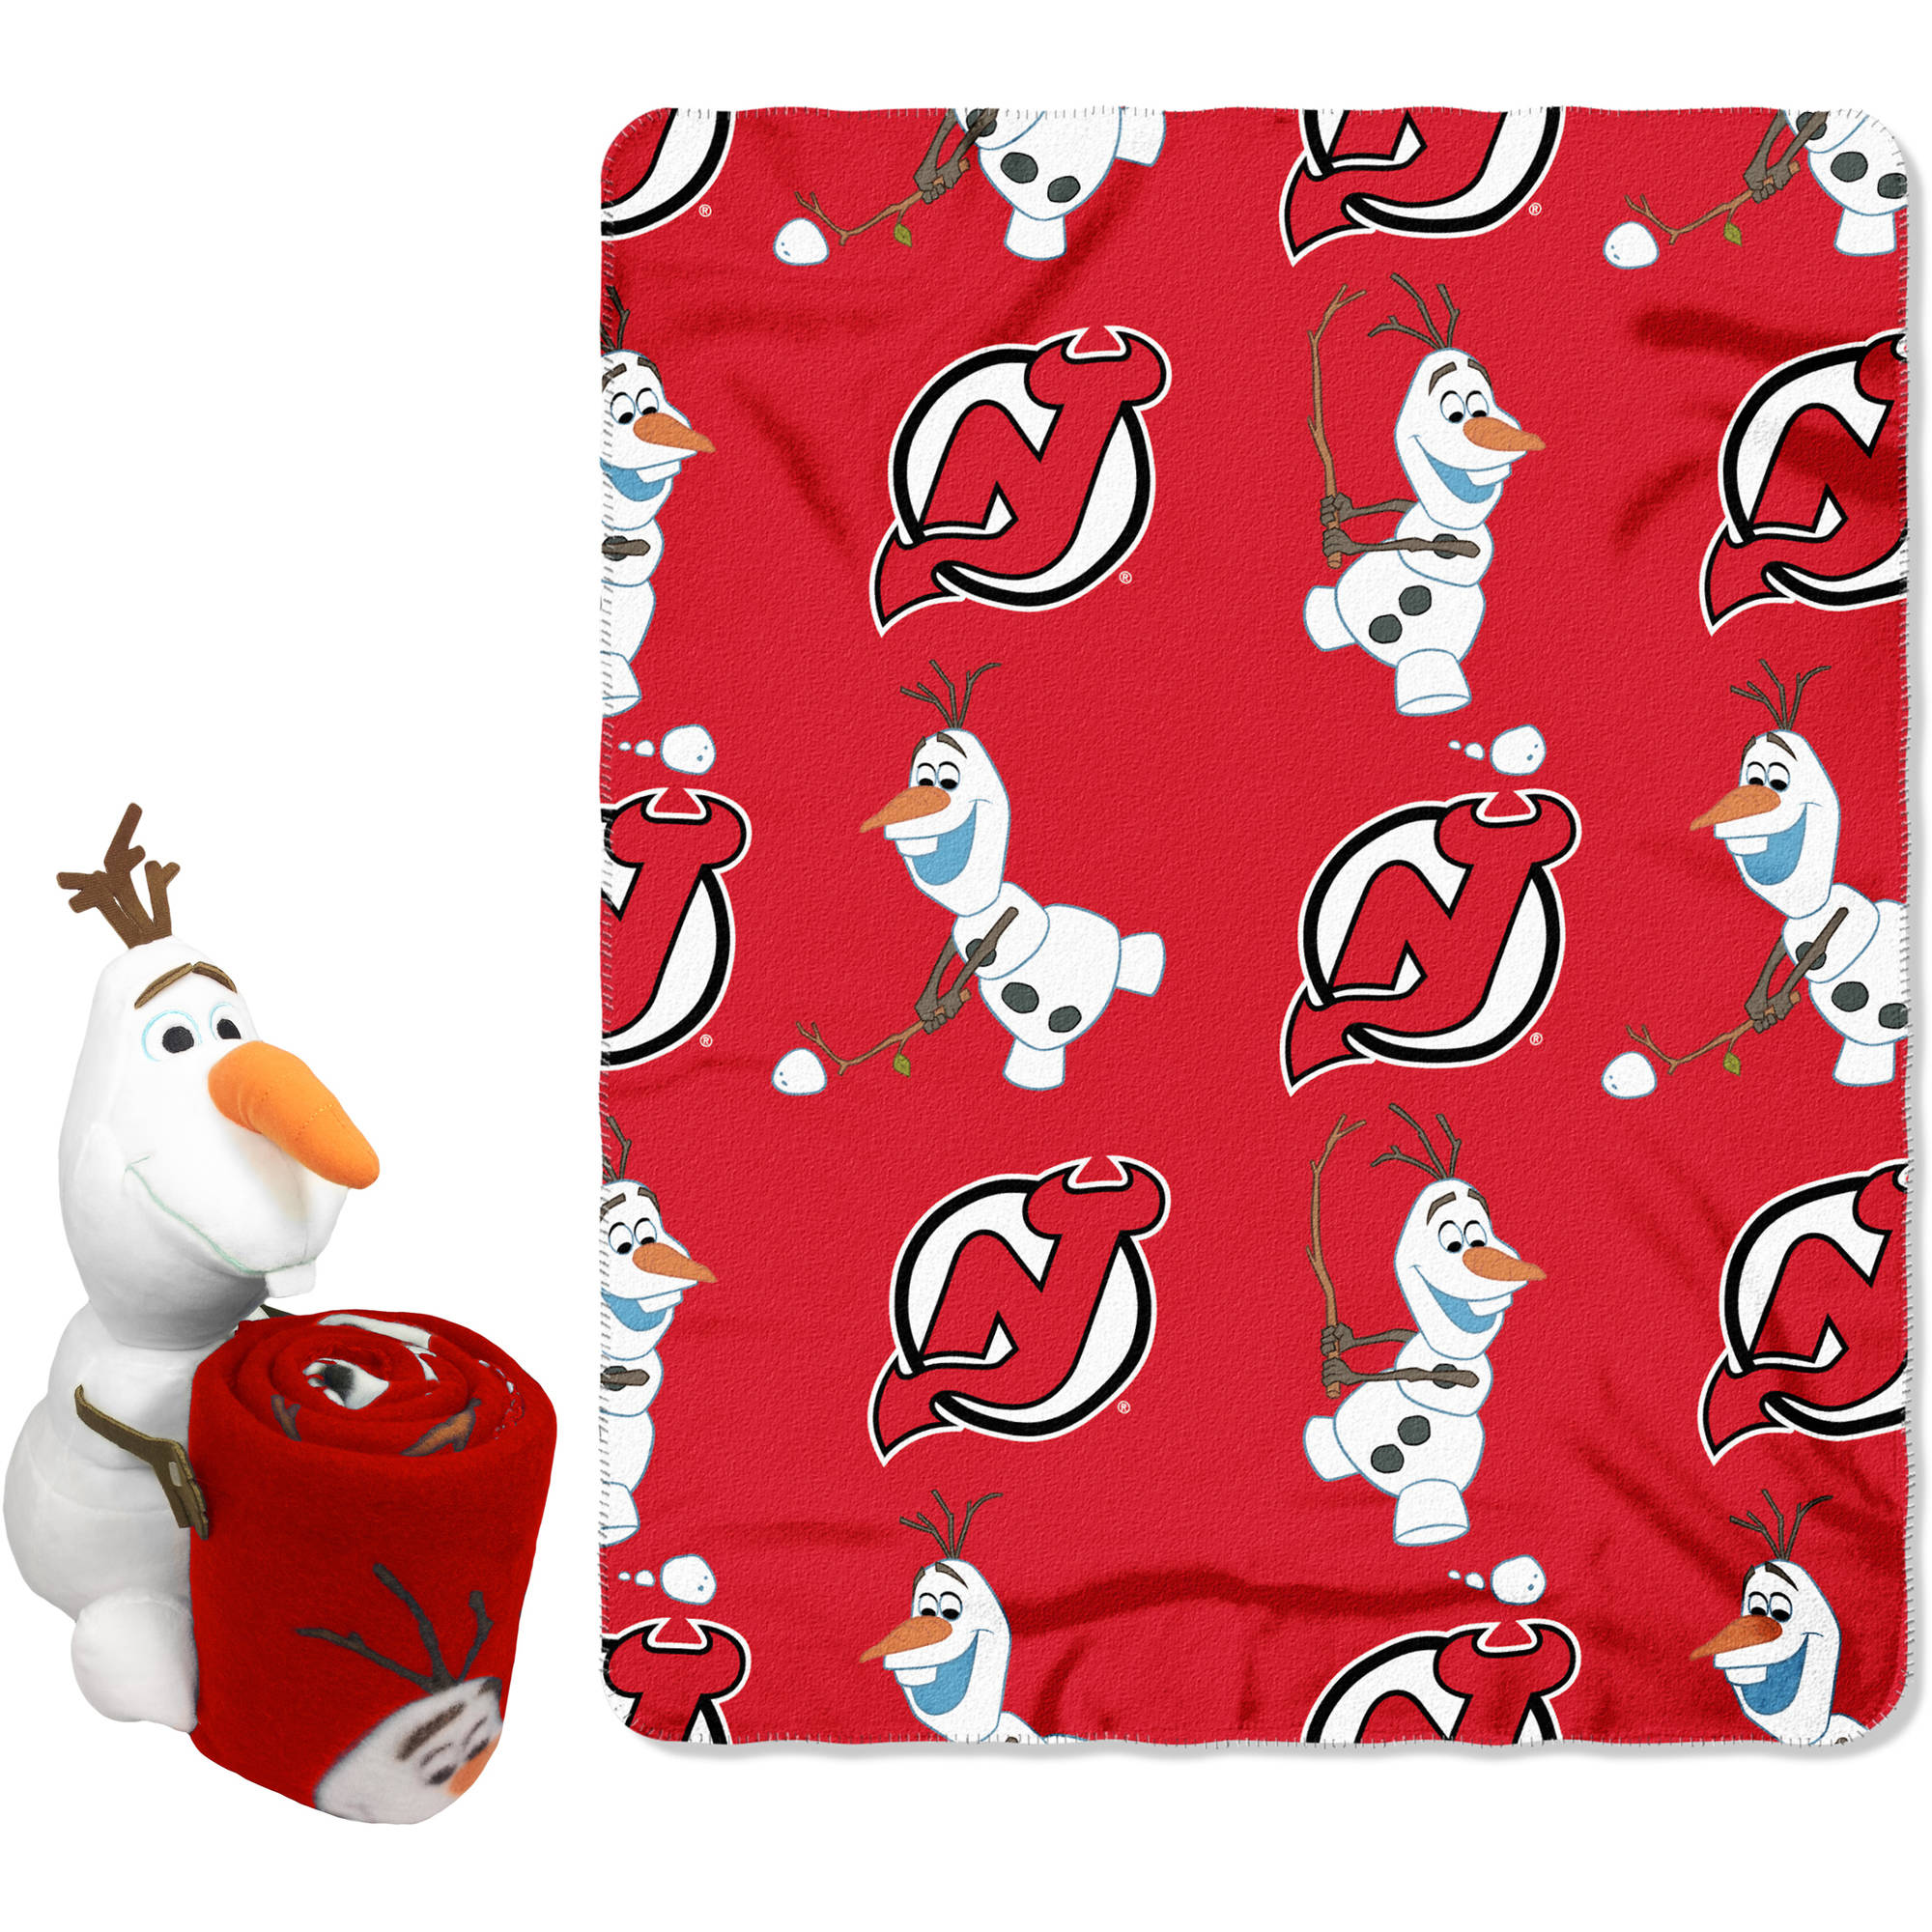 """Official NHL and Disney Cobrand New Jersey Devils Olaf Hugger Character Shaped Pillow and 40""""x 50"""" Fleece Throw Set"""